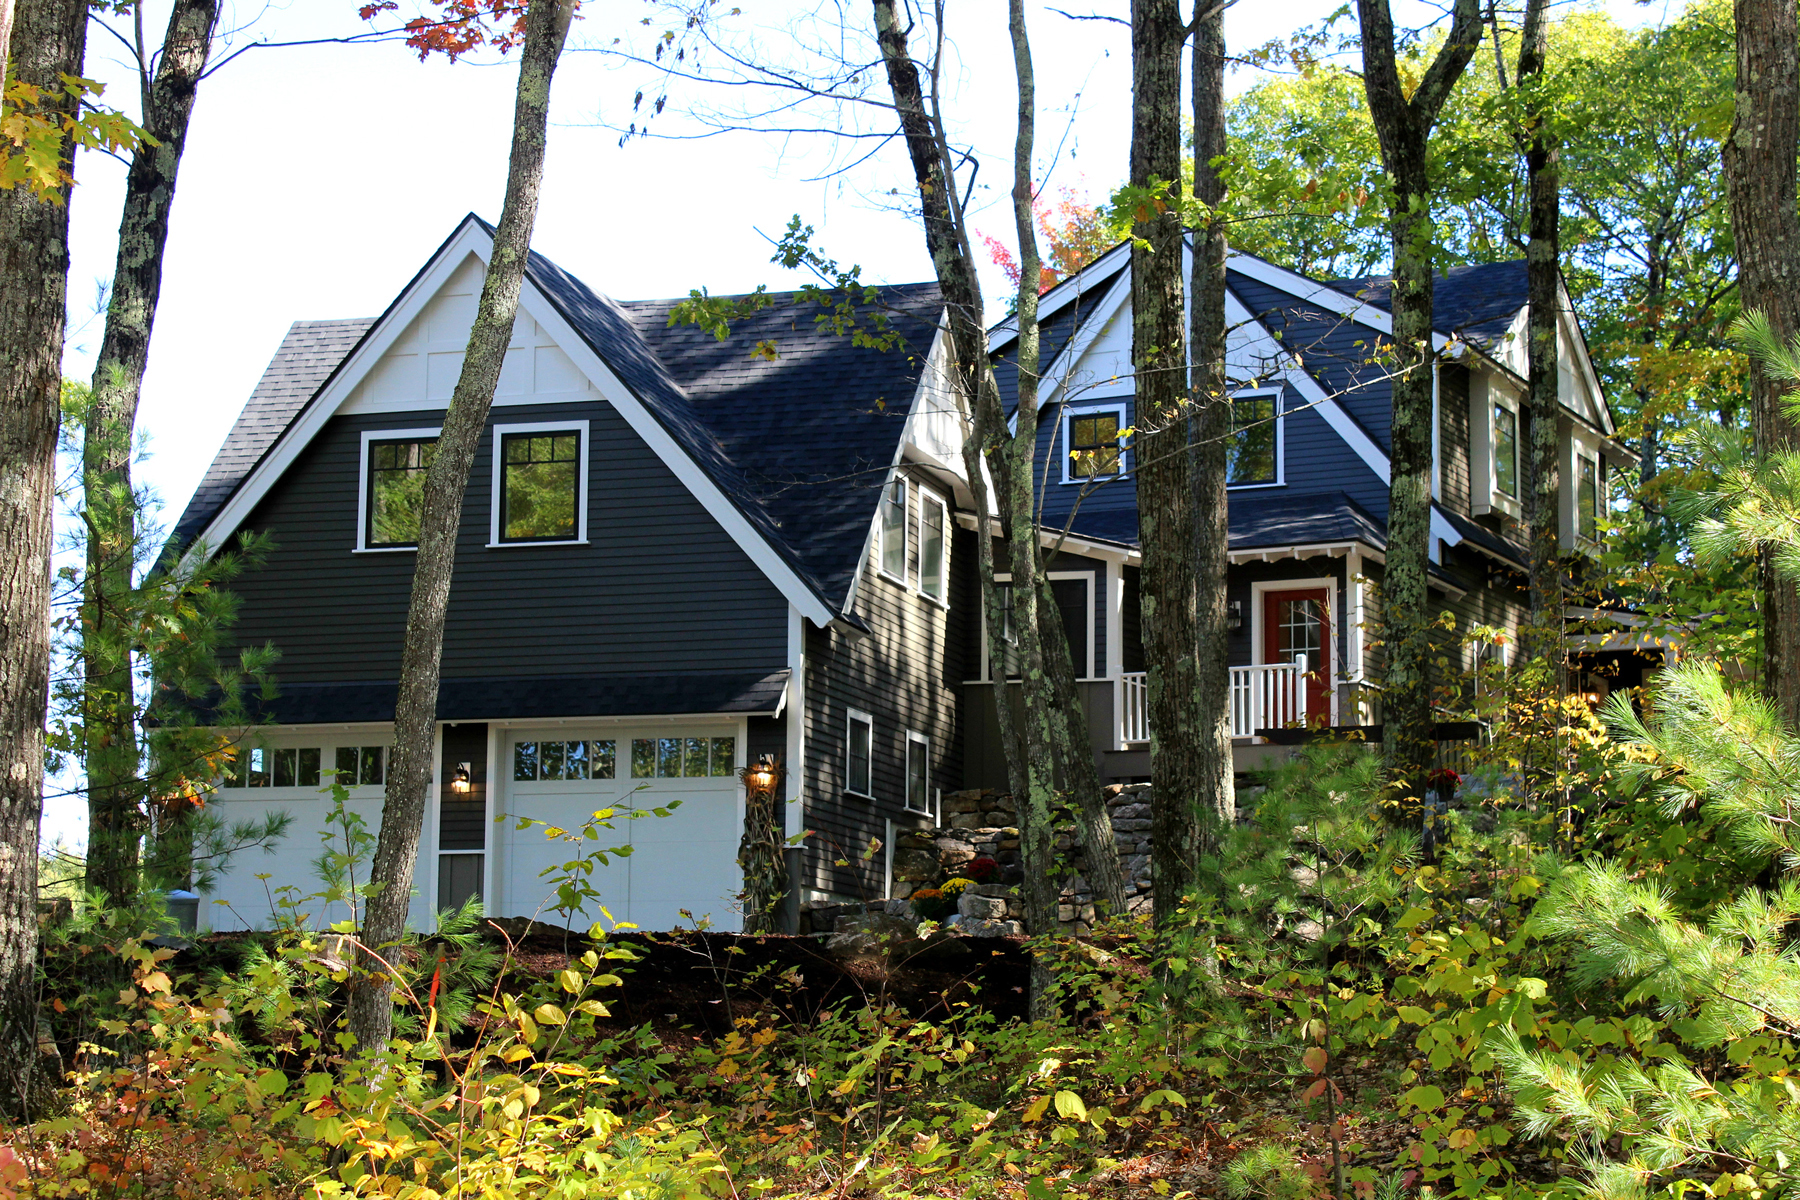 Single Family Home for Sale at 8 Peaked Hill Road, Ashland 8 Peaked Hill Rd Ashland, New Hampshire, 03217 United States